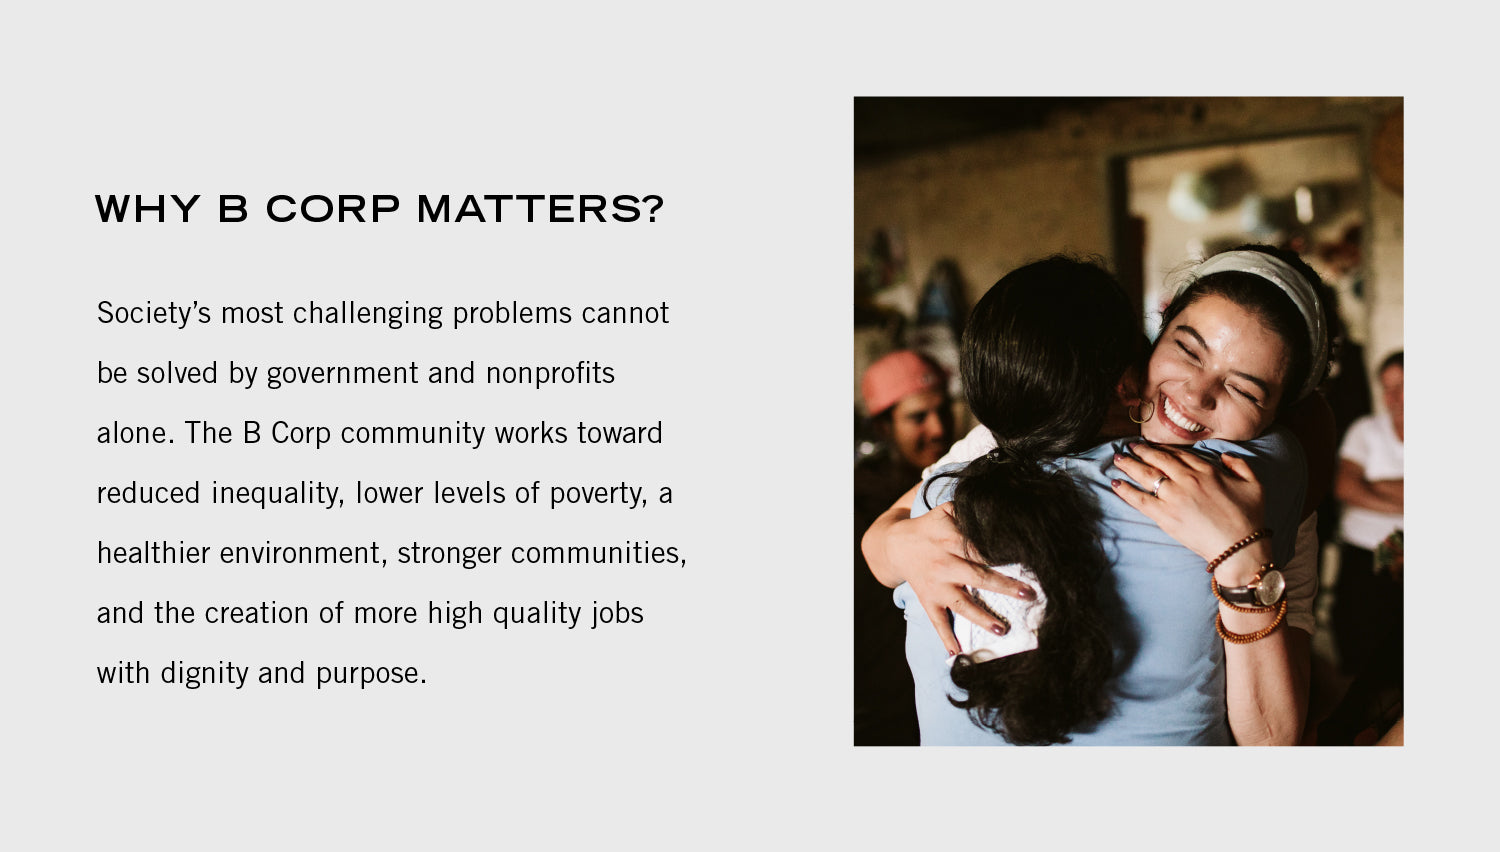 Why B Corp's matter? Society most challenging problems cannot be solved by governments and nonprofits alone. The B Corp community works towards to reduce inequality, lower levels of poverty, a healthier environment, stronger communities, and the creation of more quality jobs with dignity and purpose.